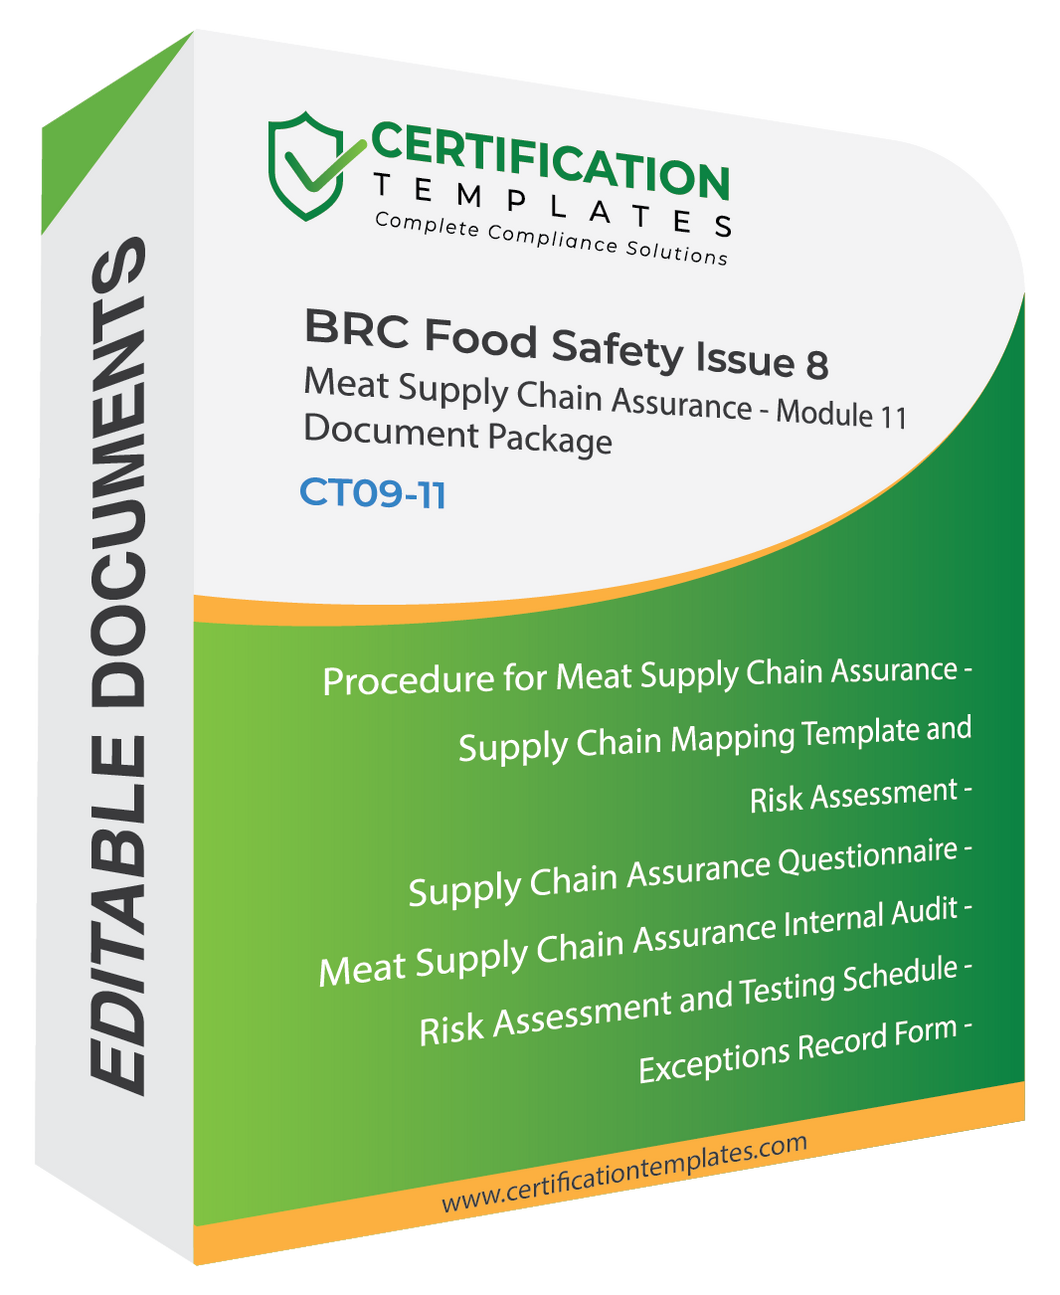 BRC Meat Supply Chain Assurance